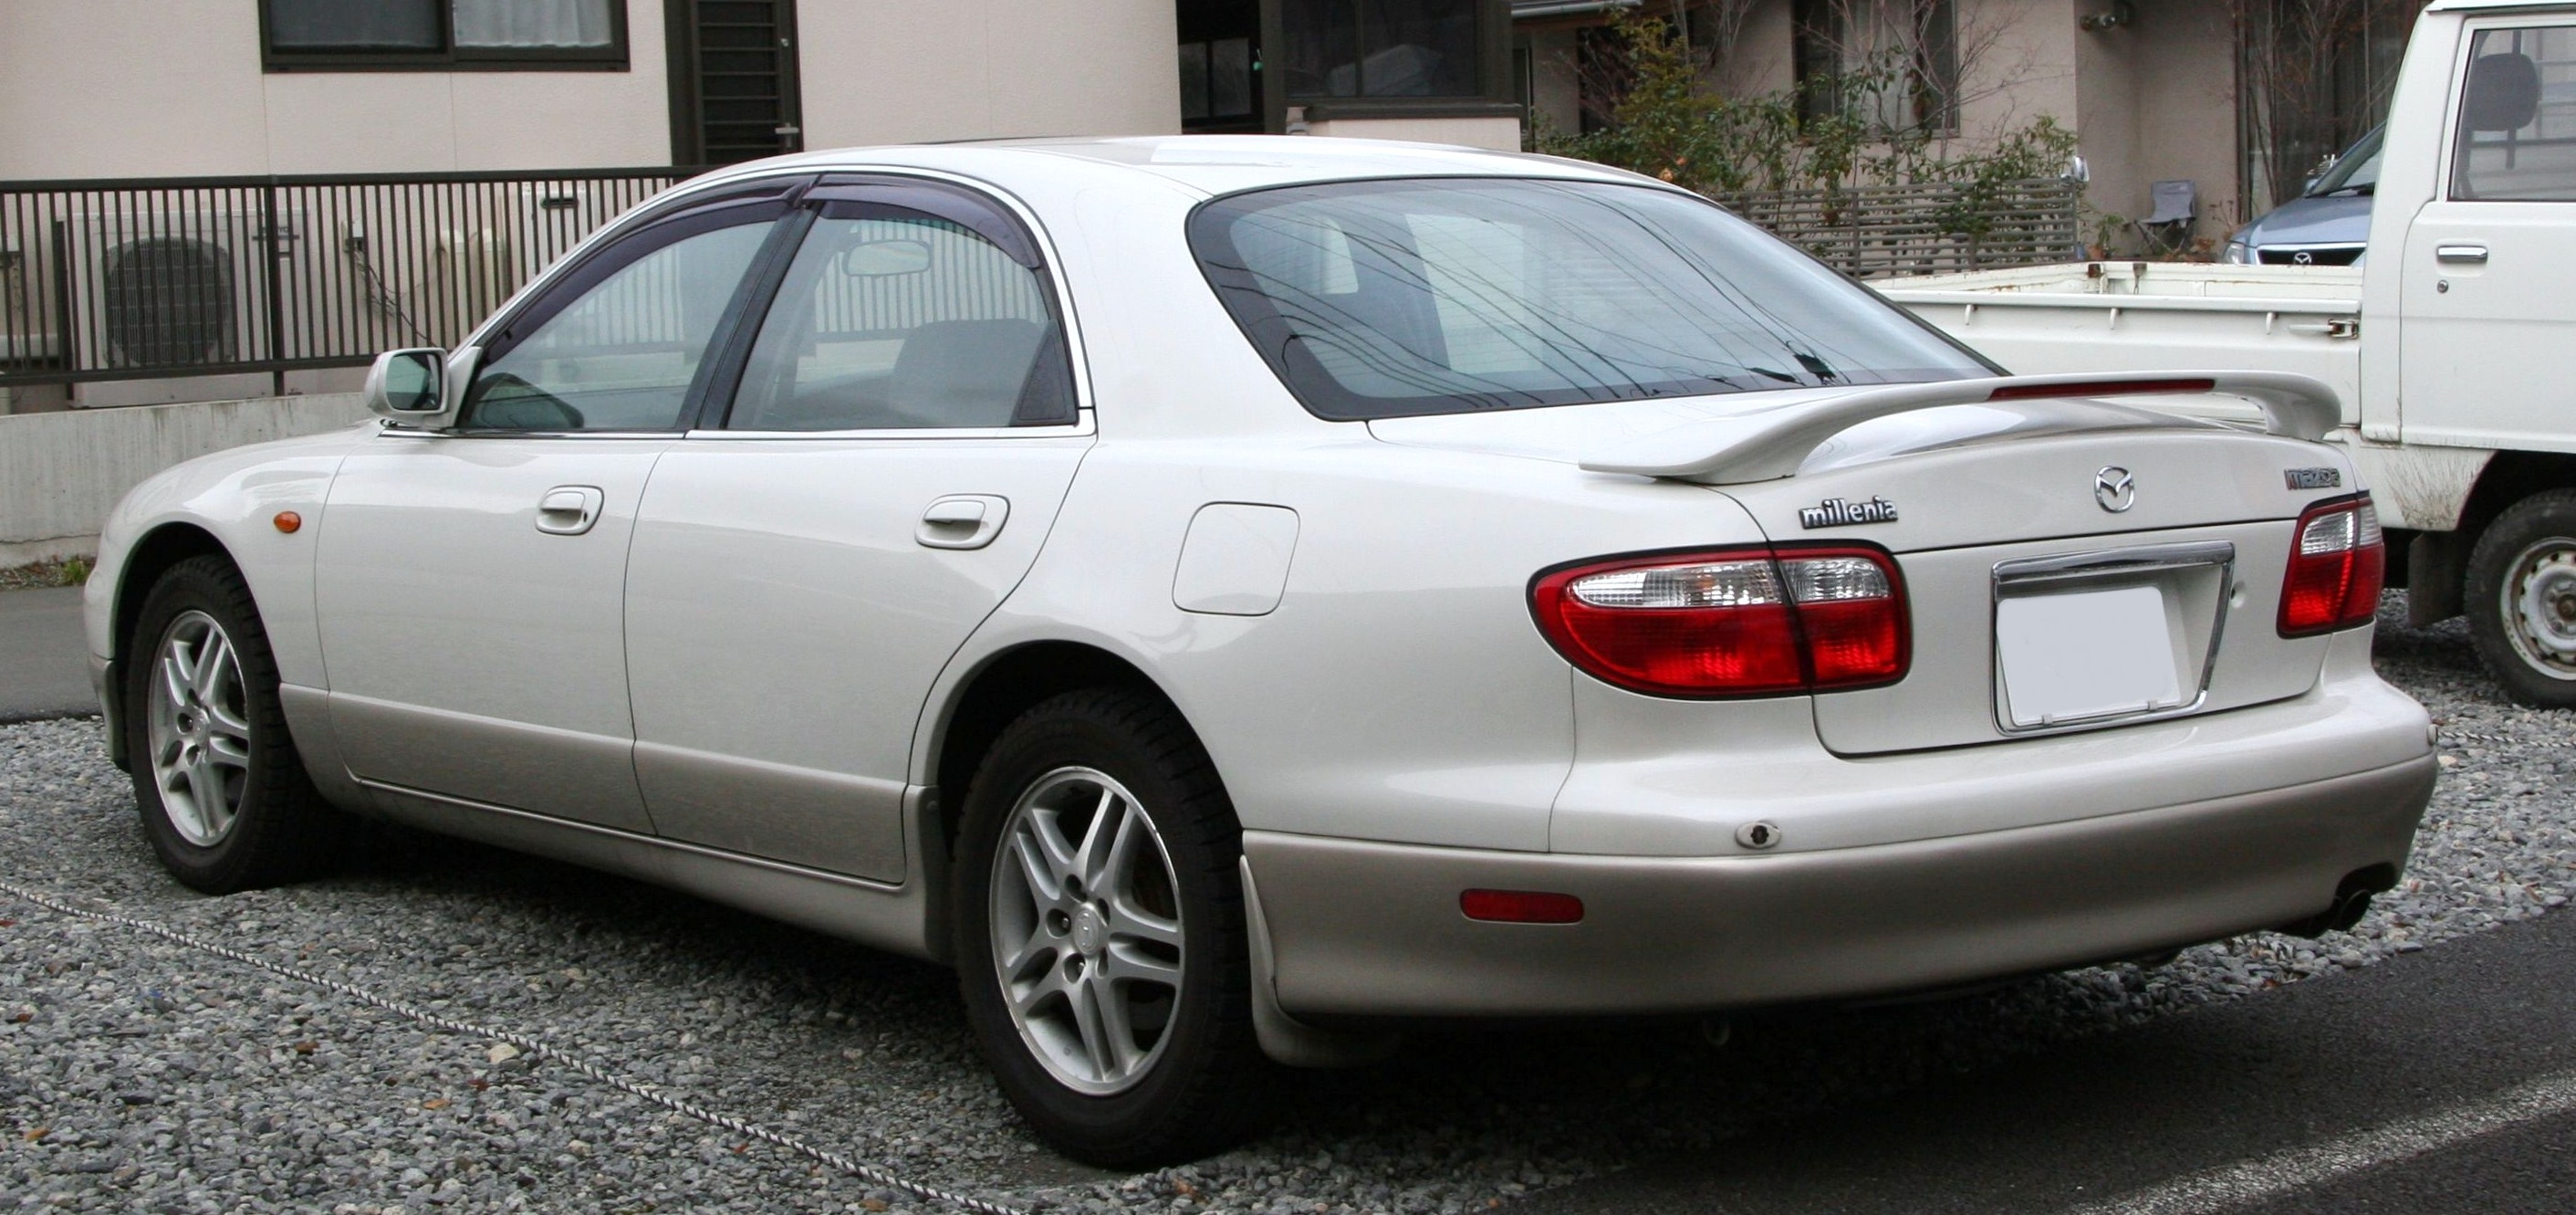 File:1998-2000 Mazda Millenia rear.jpg - Wikimedia Commons